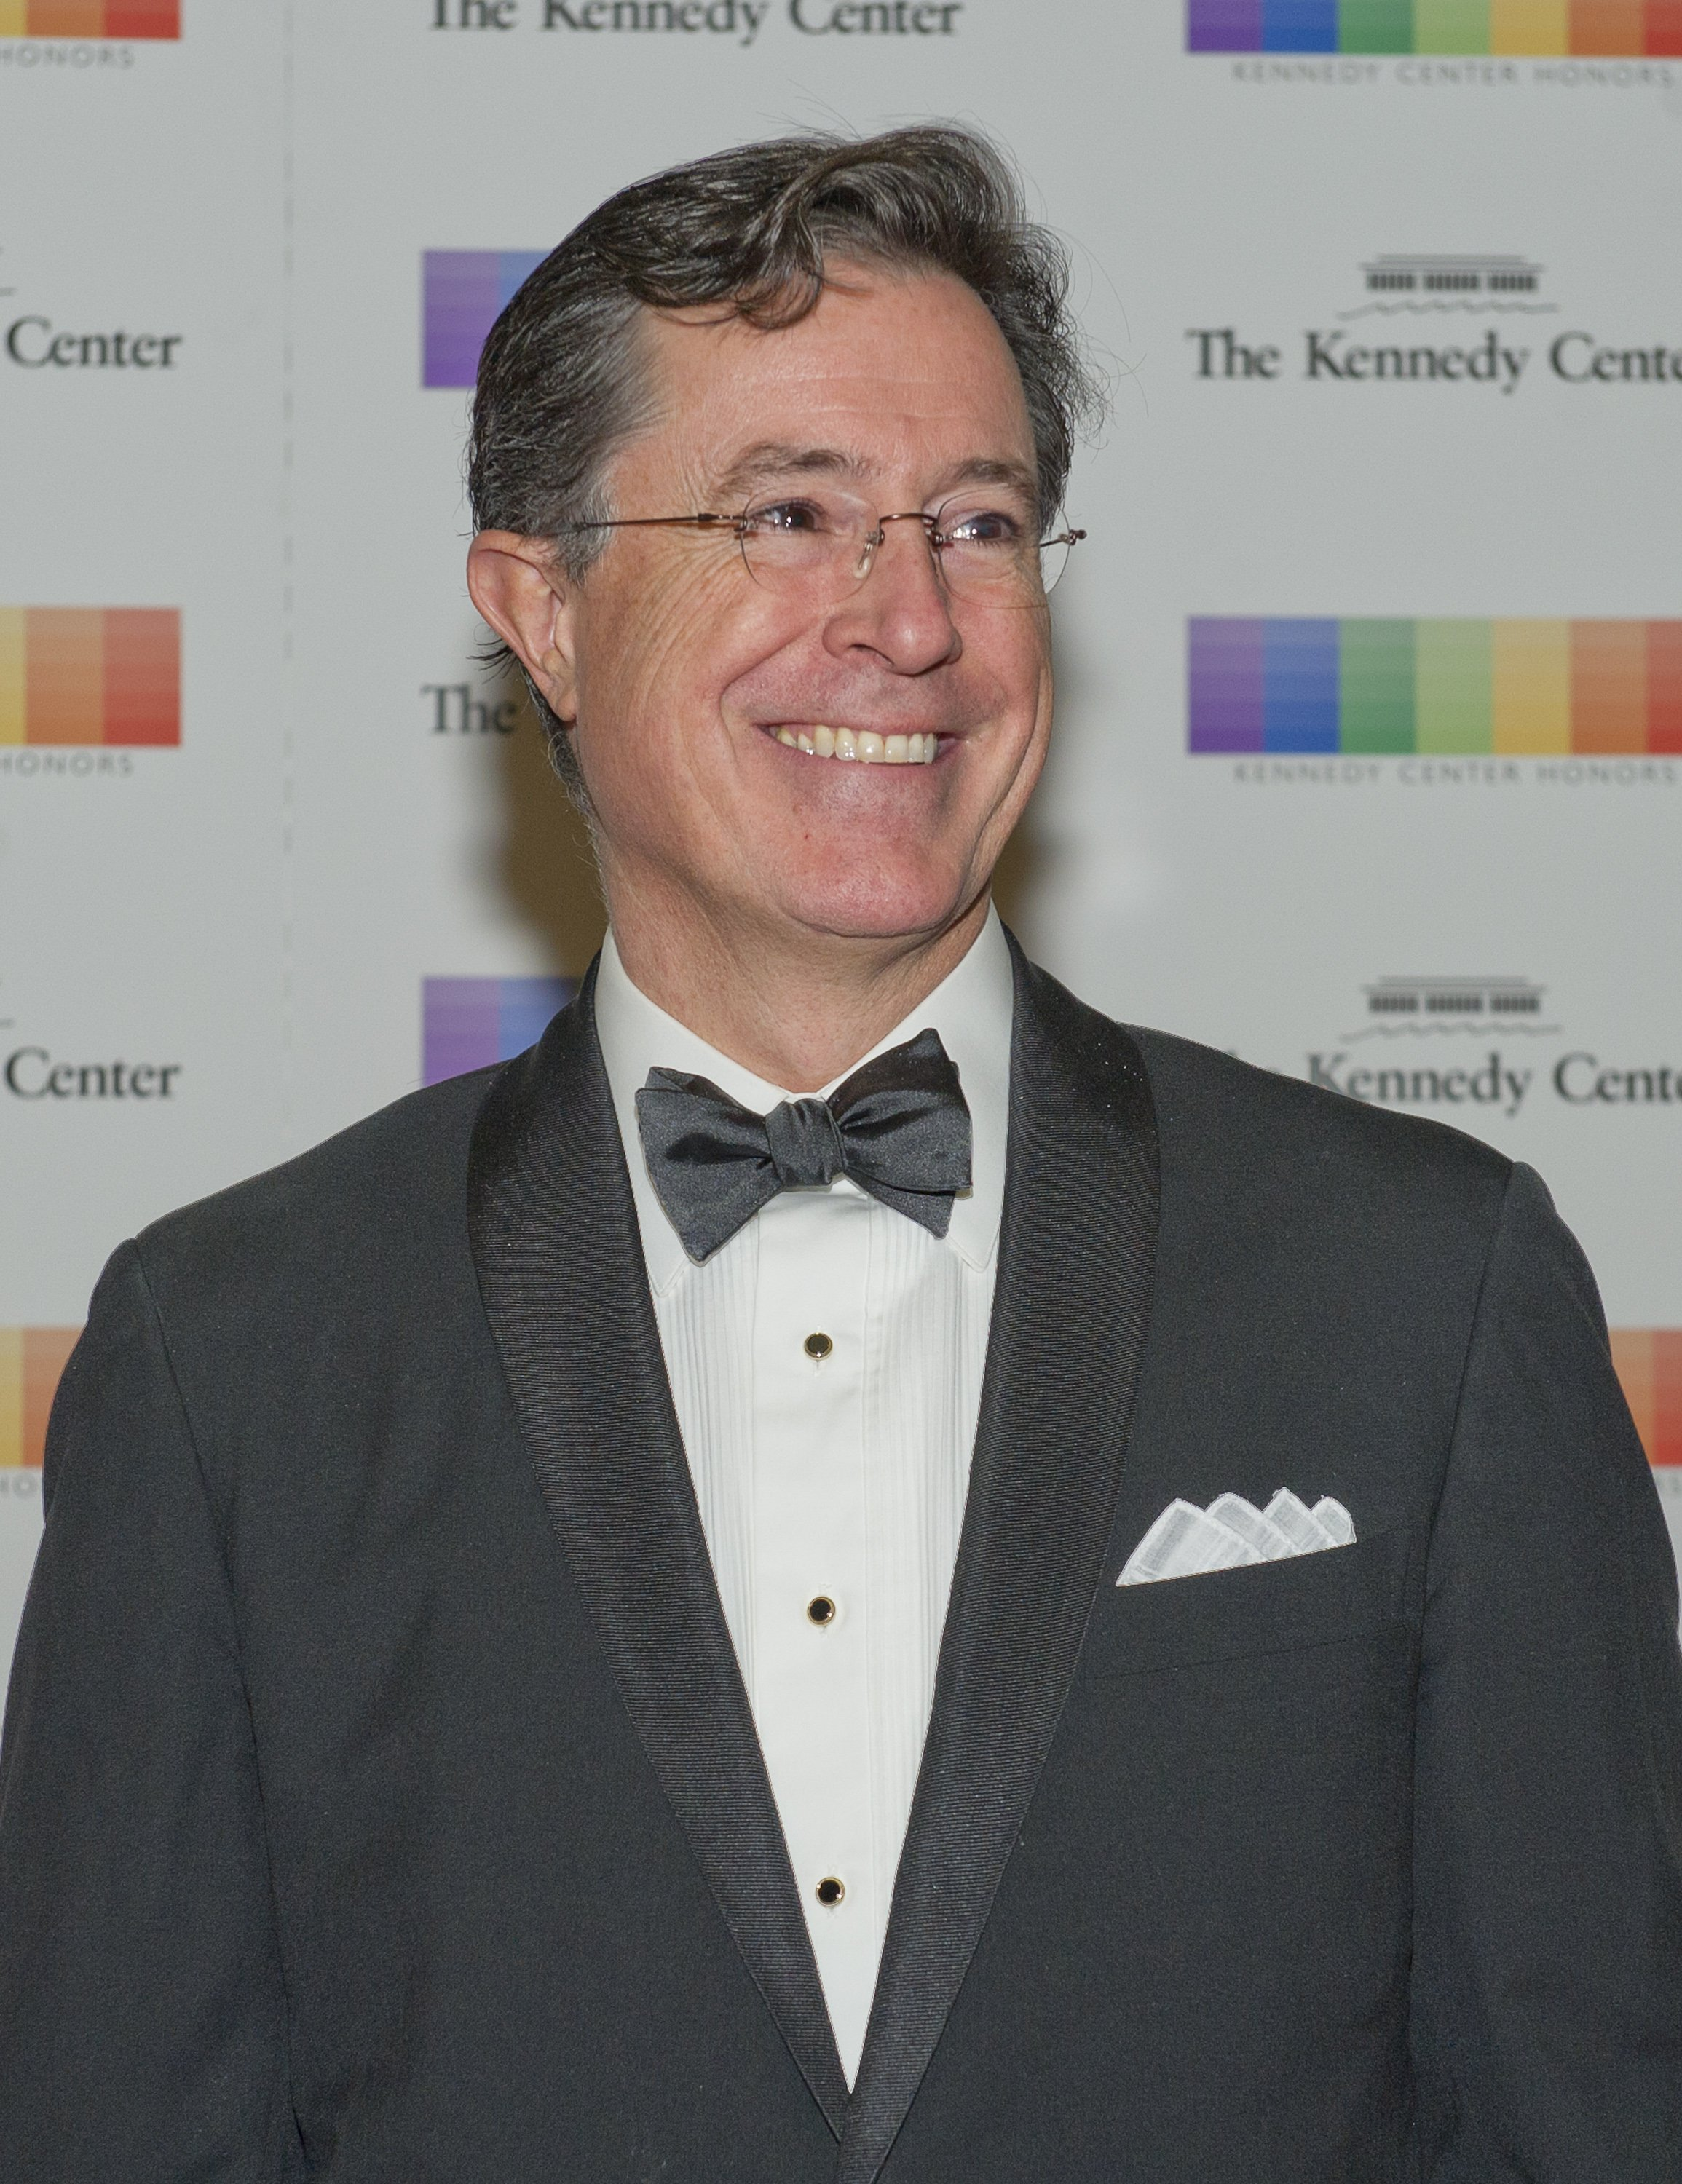 Stephen Colbert Image Source: Getty Images.